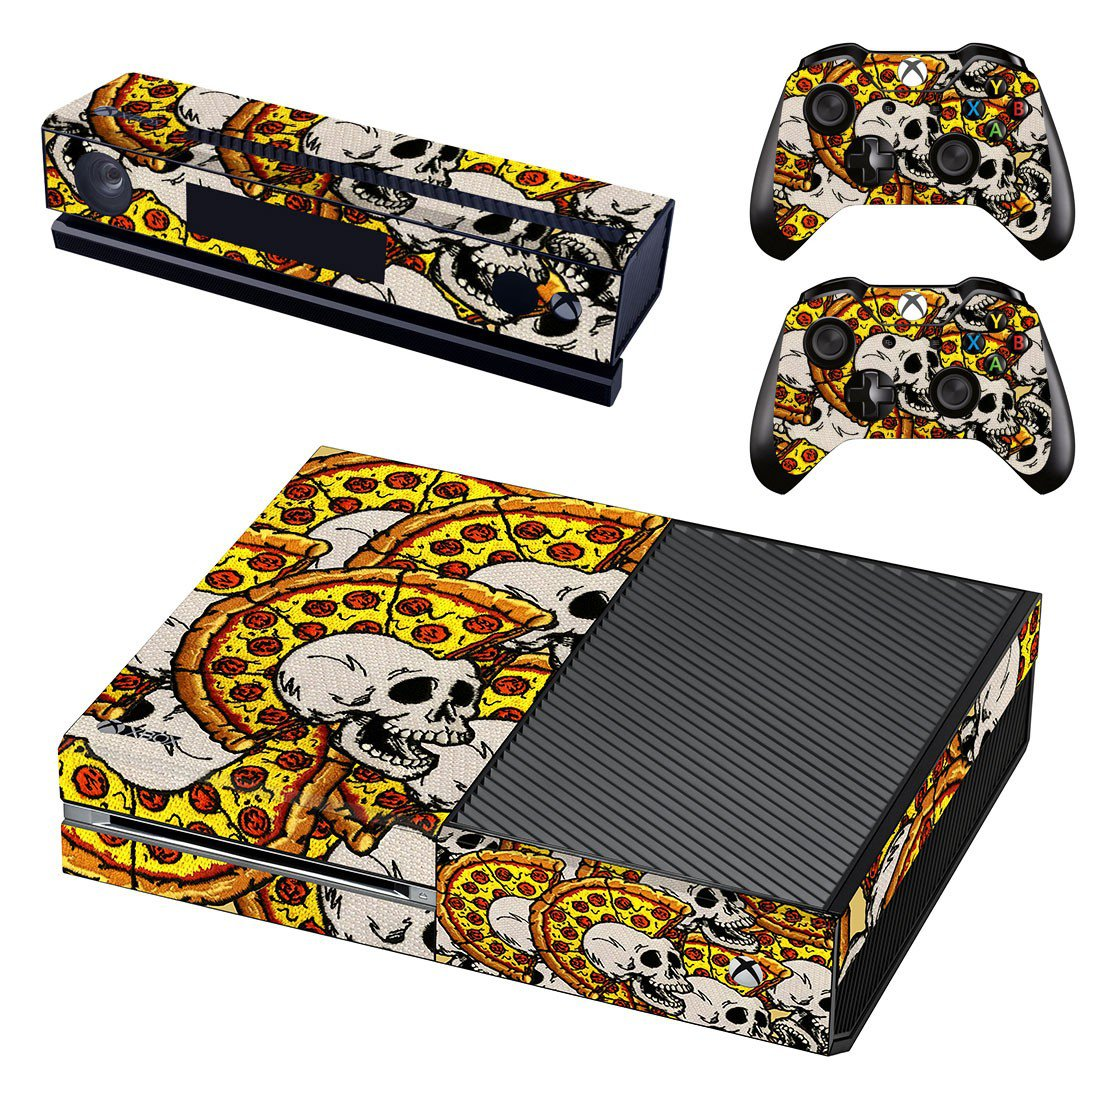 Artificial Skulls skin decal for Xbox one console and controllers